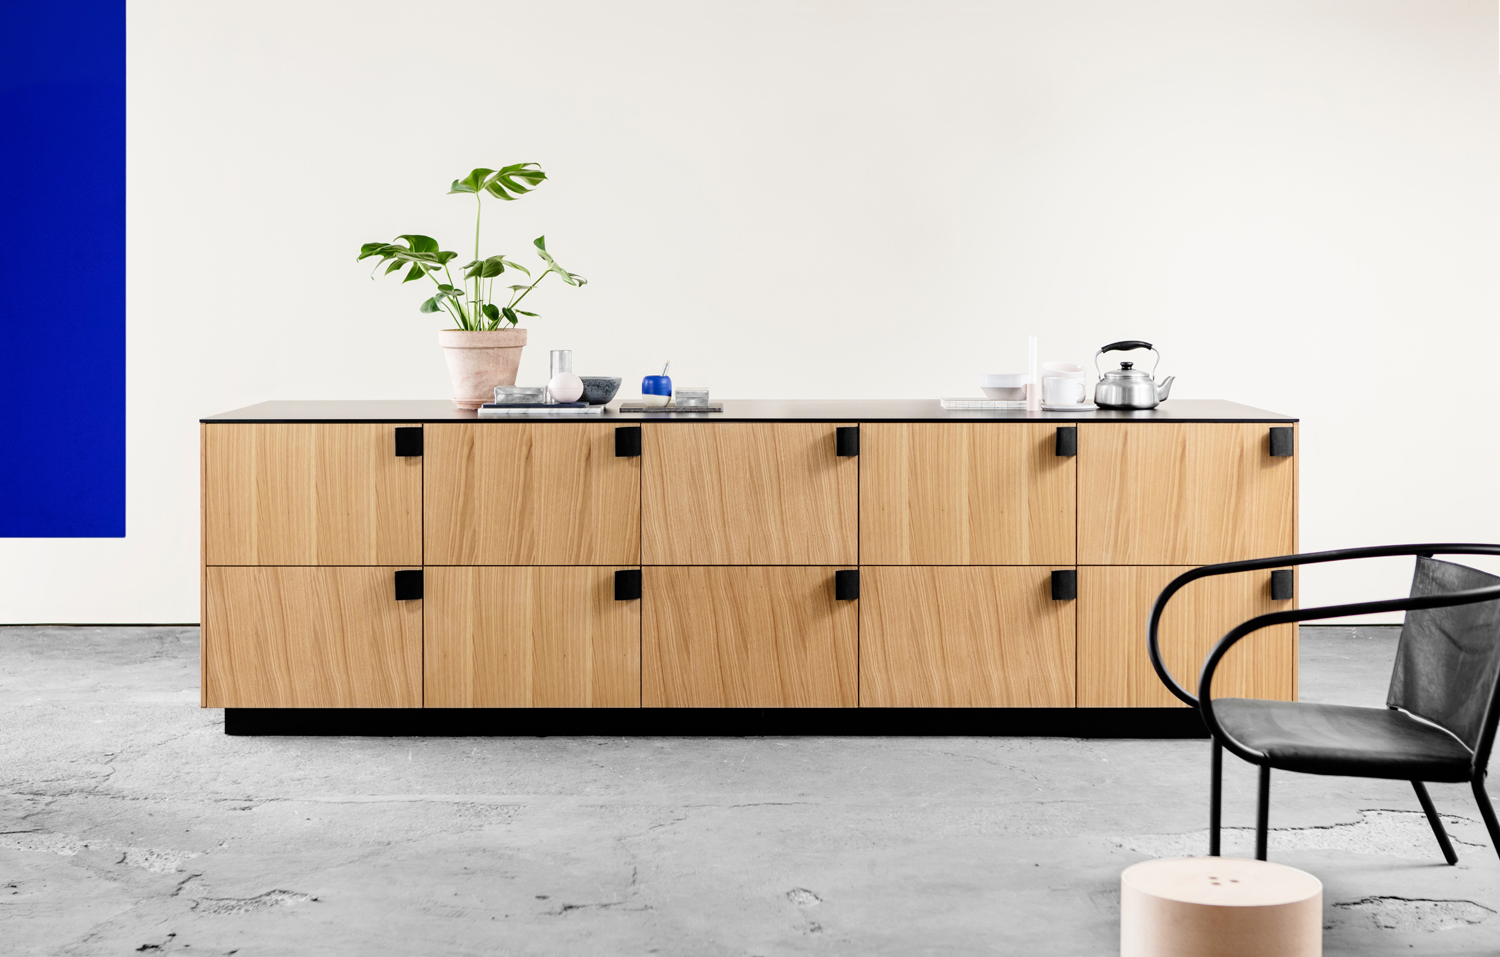 kitchen furniture ikea mobile cart get a glimpse of these hacked kitchens by big henning larsen bjarke ingels group s cabinets for reform photo via